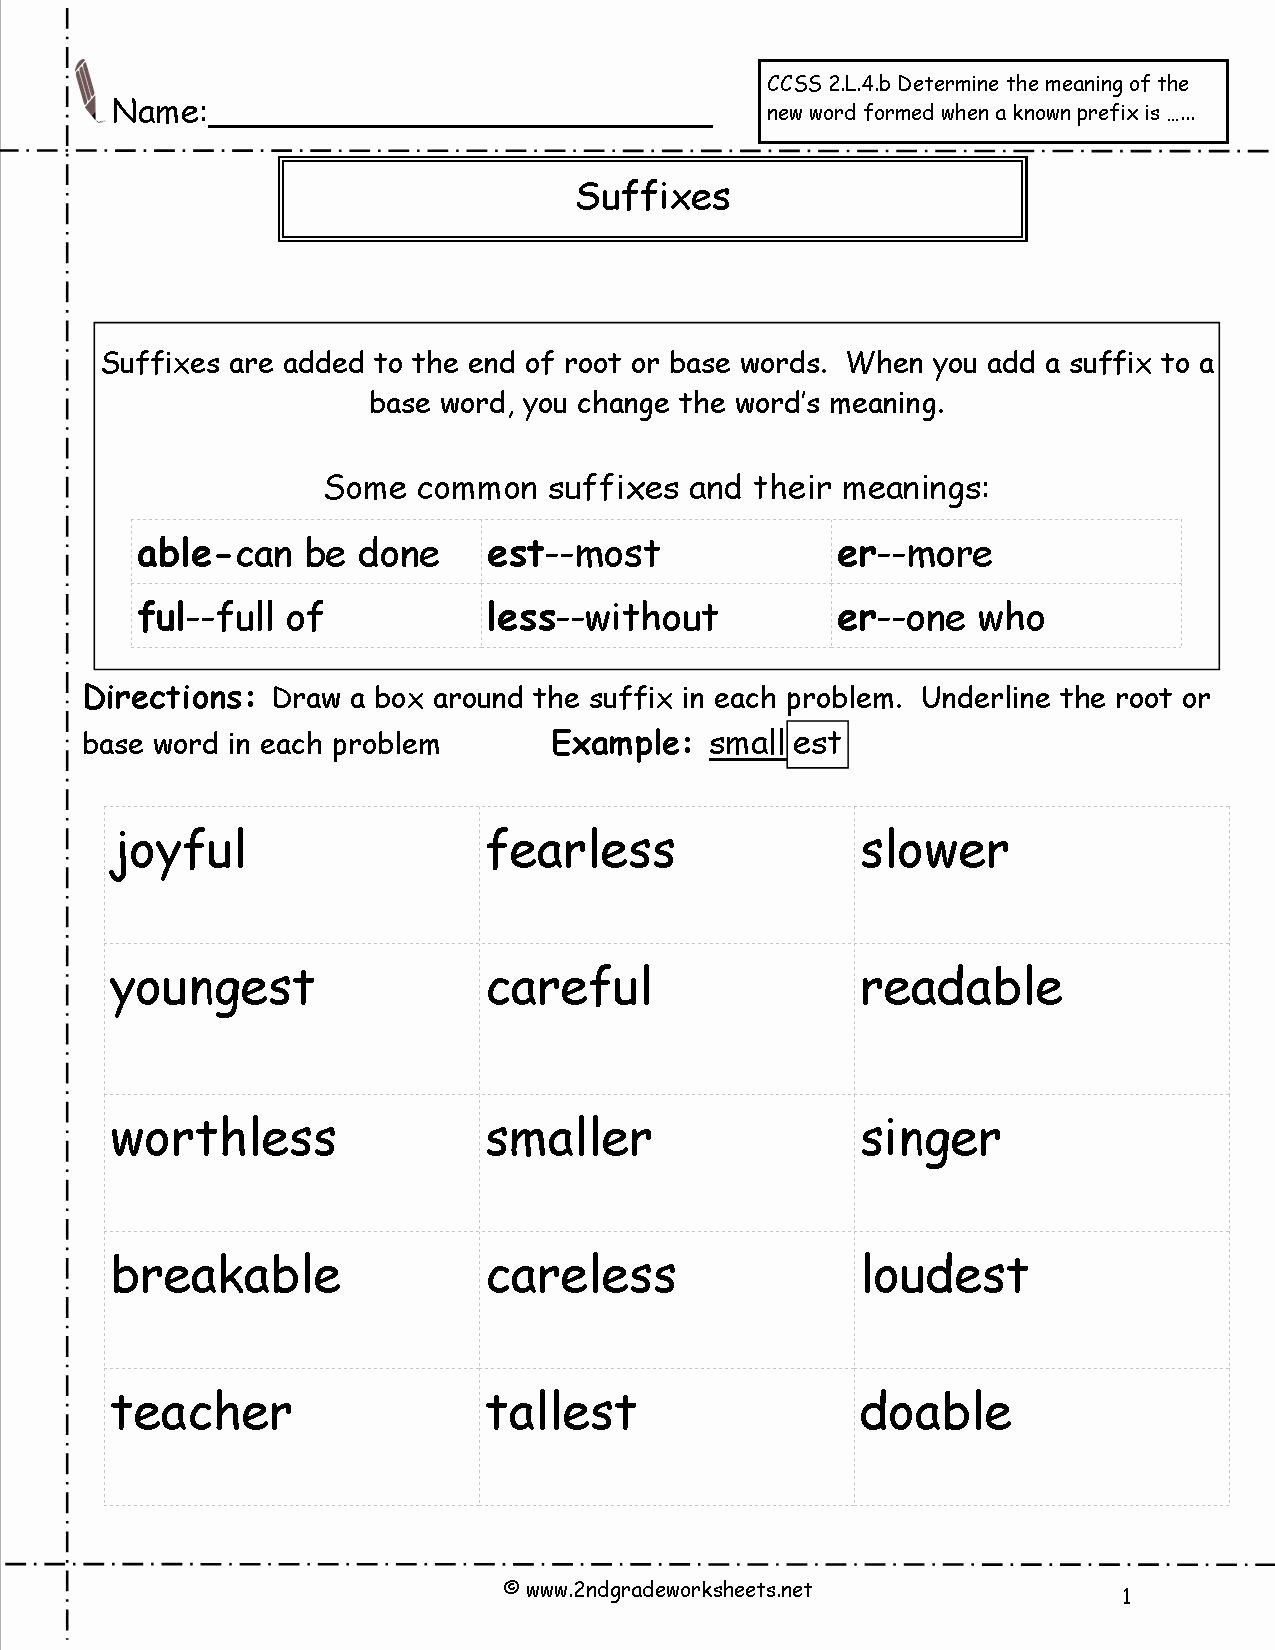 50 Prefixes And Suffixes Worksheet In With Images